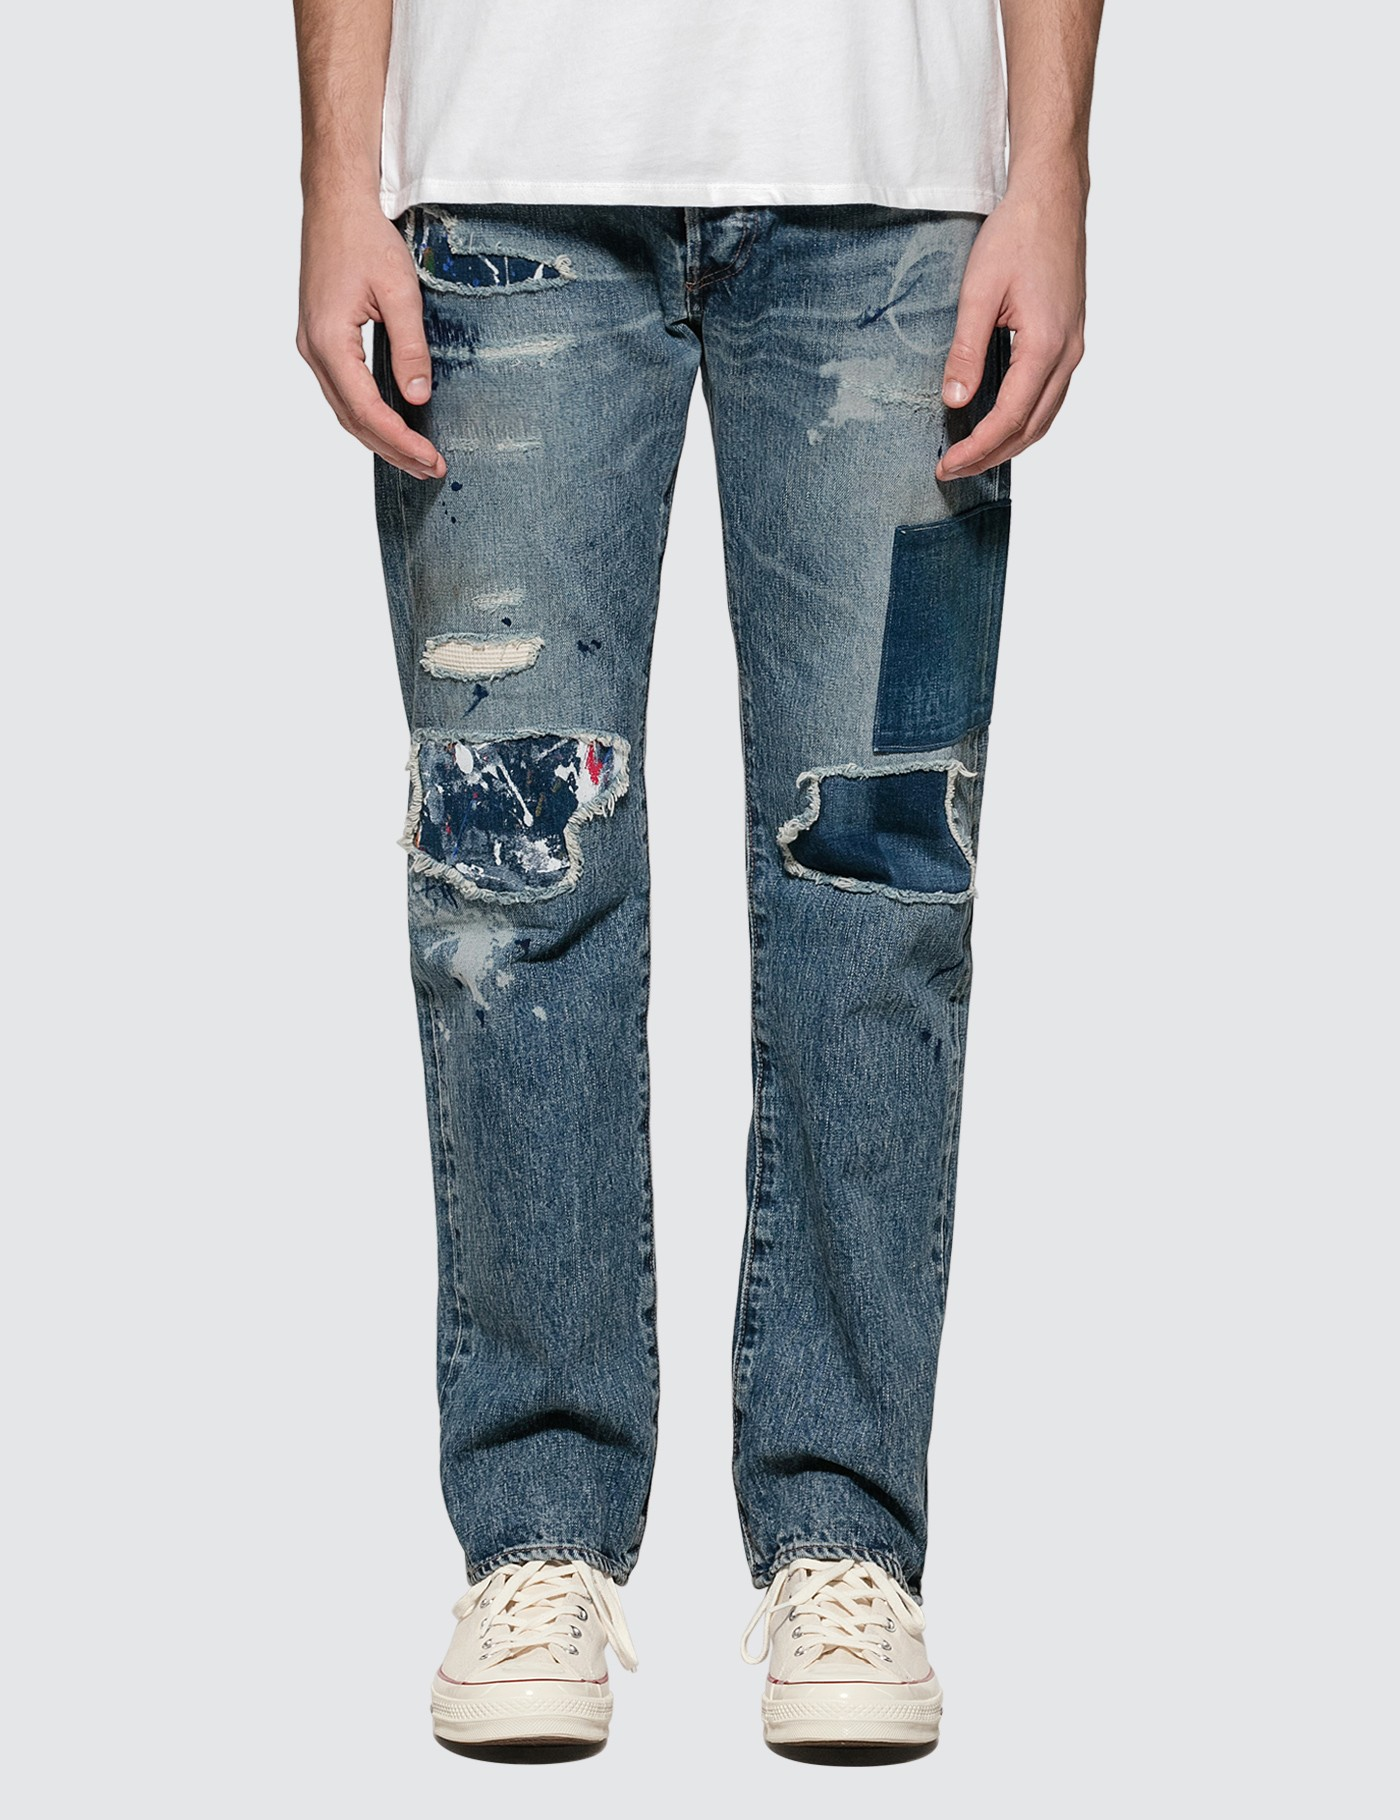 Leviu2019s 501 Original Fit Denim Jeans